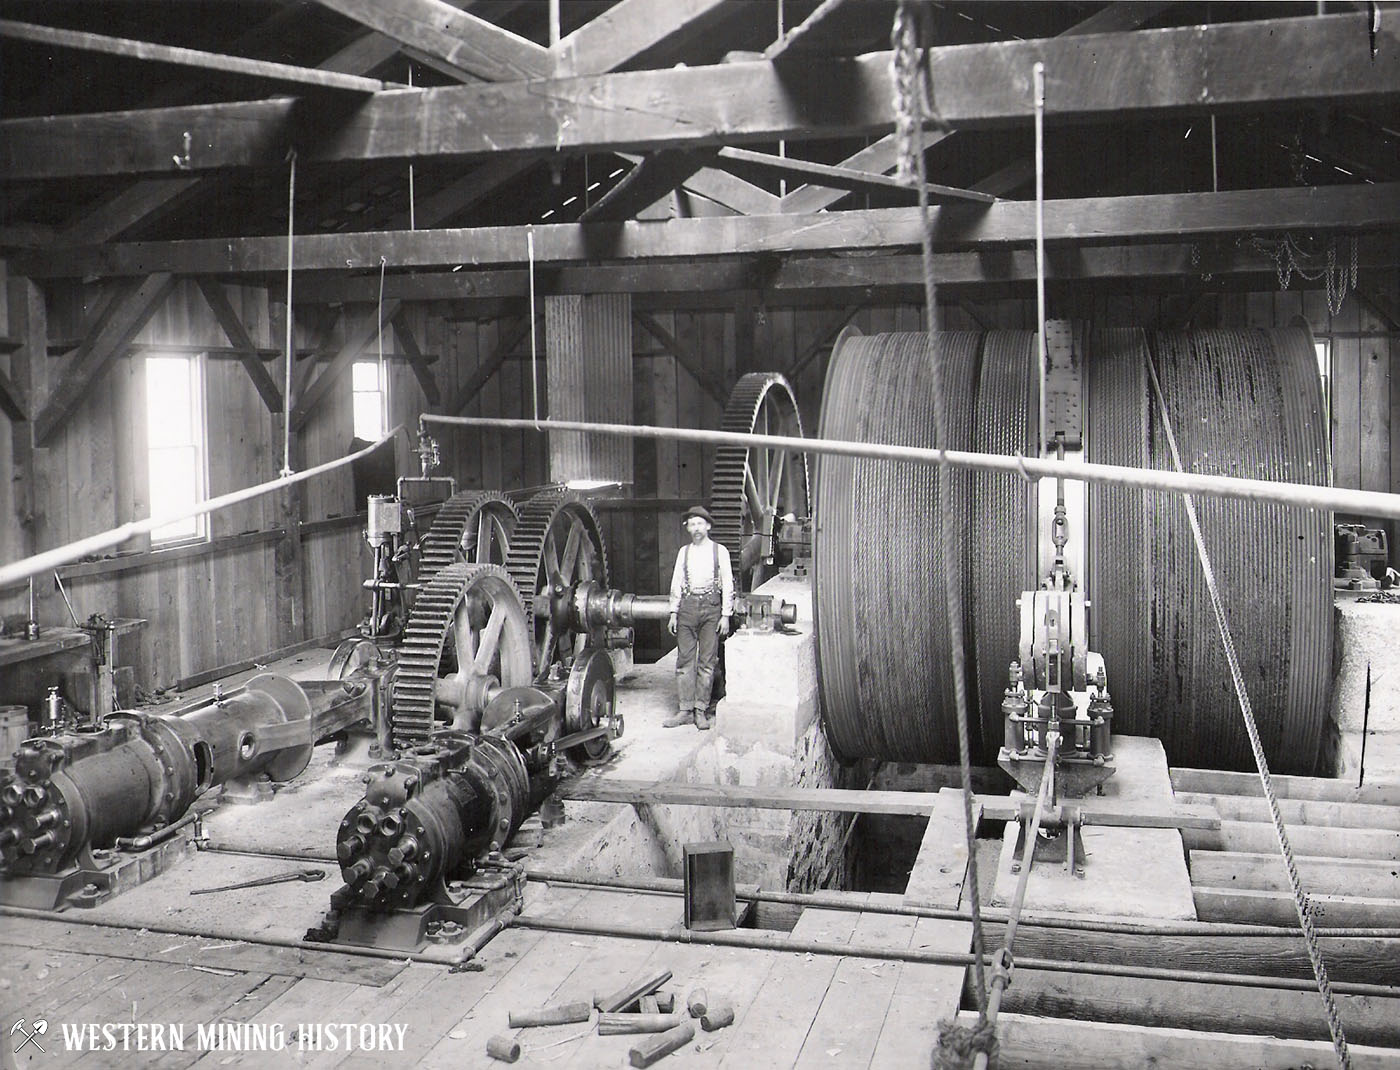 Interior of a hoist house at a Morenci, Arizona mine